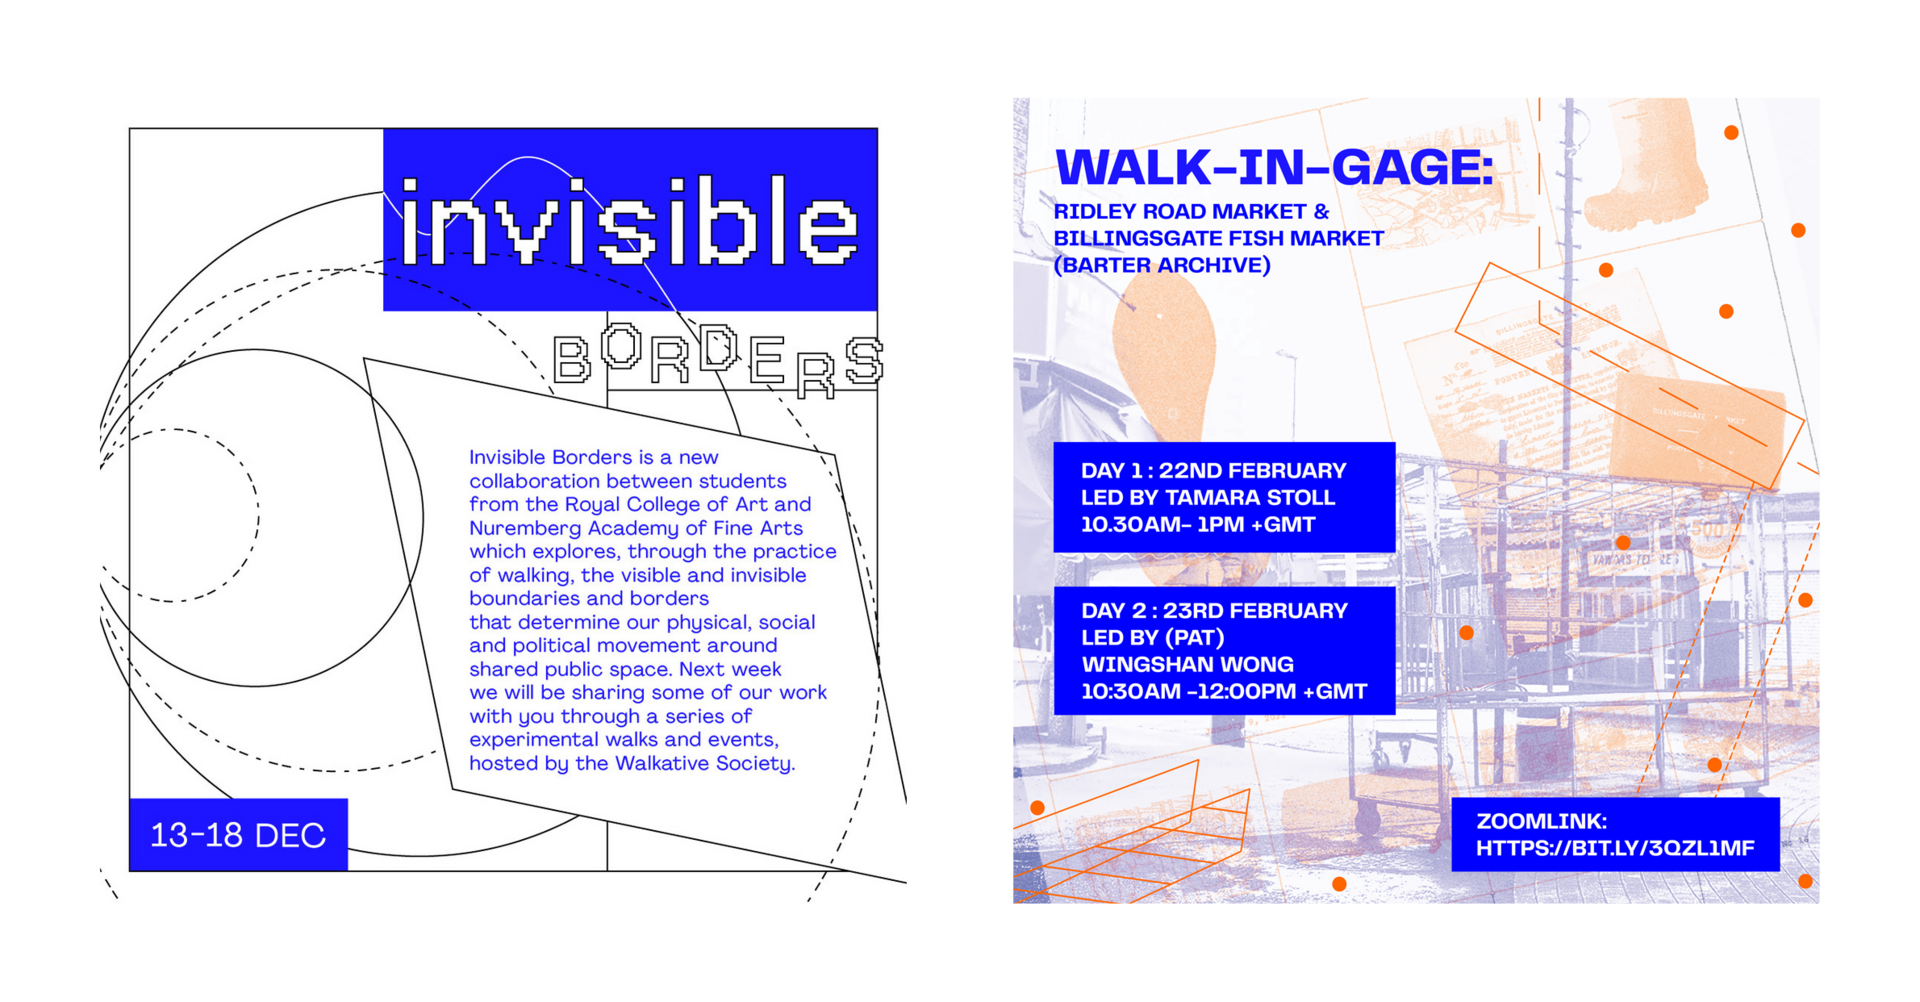 Visuals for 'Invisible Borders' and 'Walk-In-Gage' event.